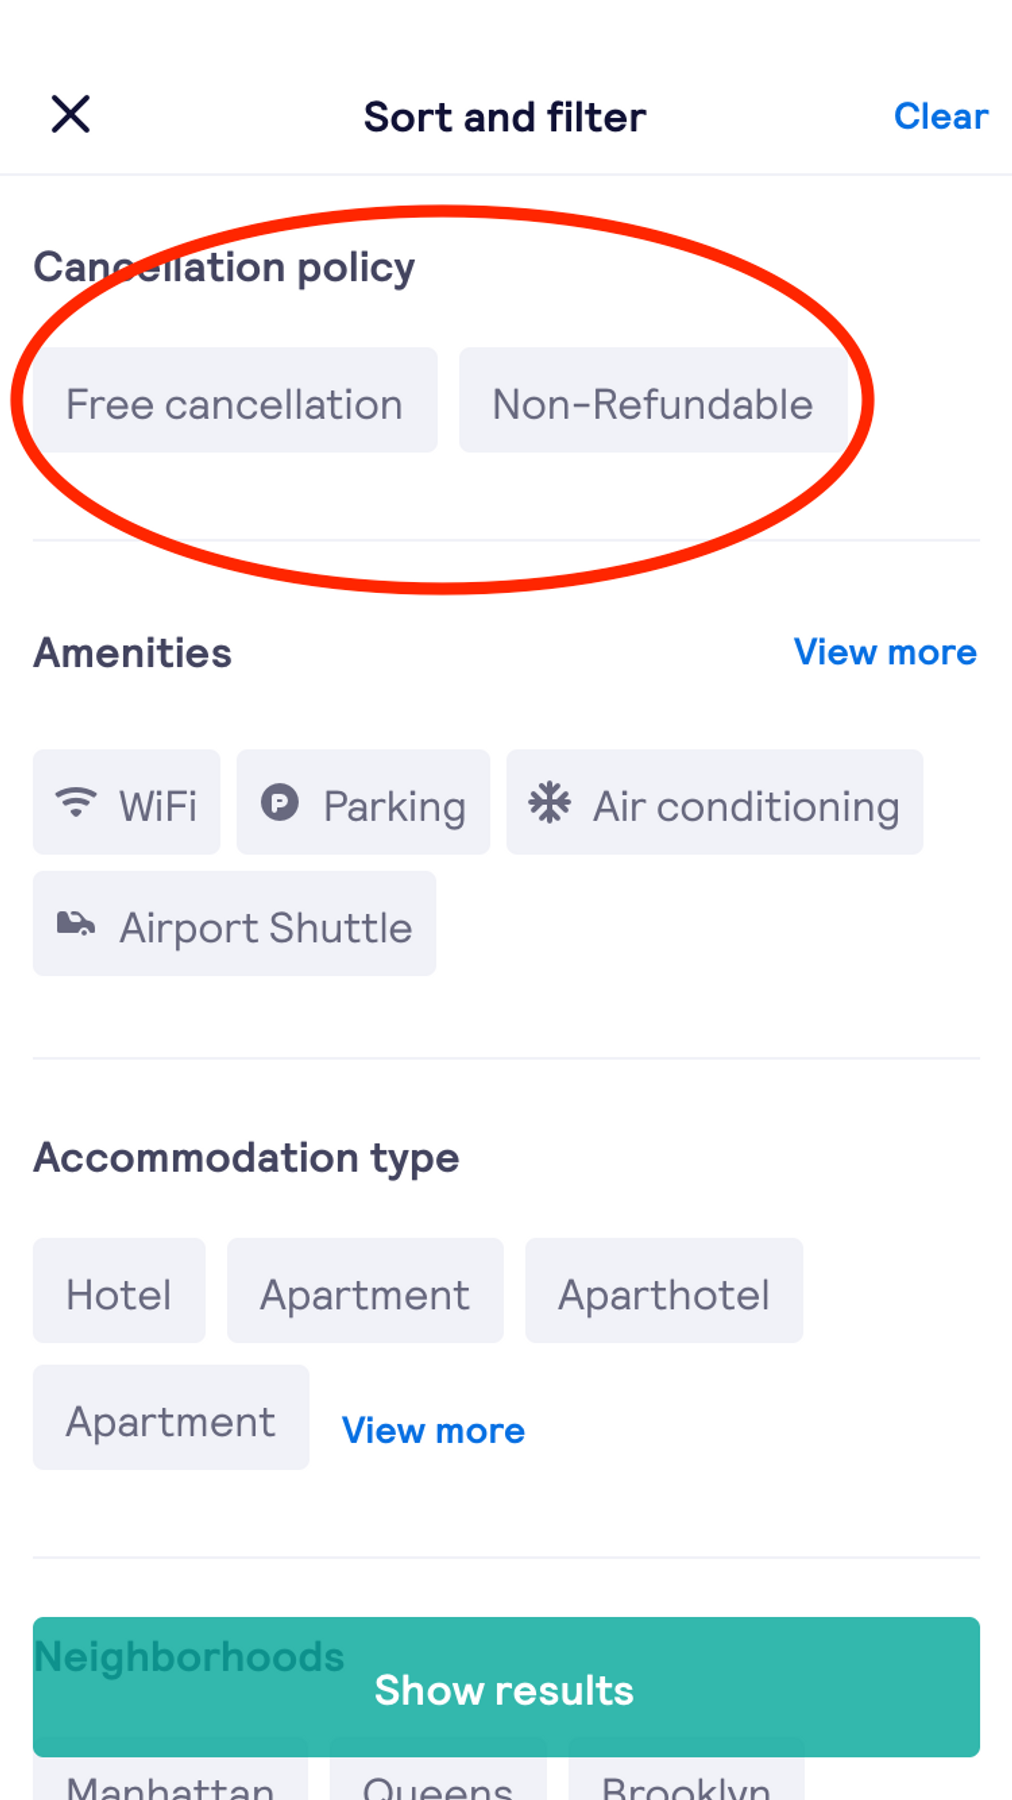 Filter for non-refundable bookings for competitive last-minute hotel deals